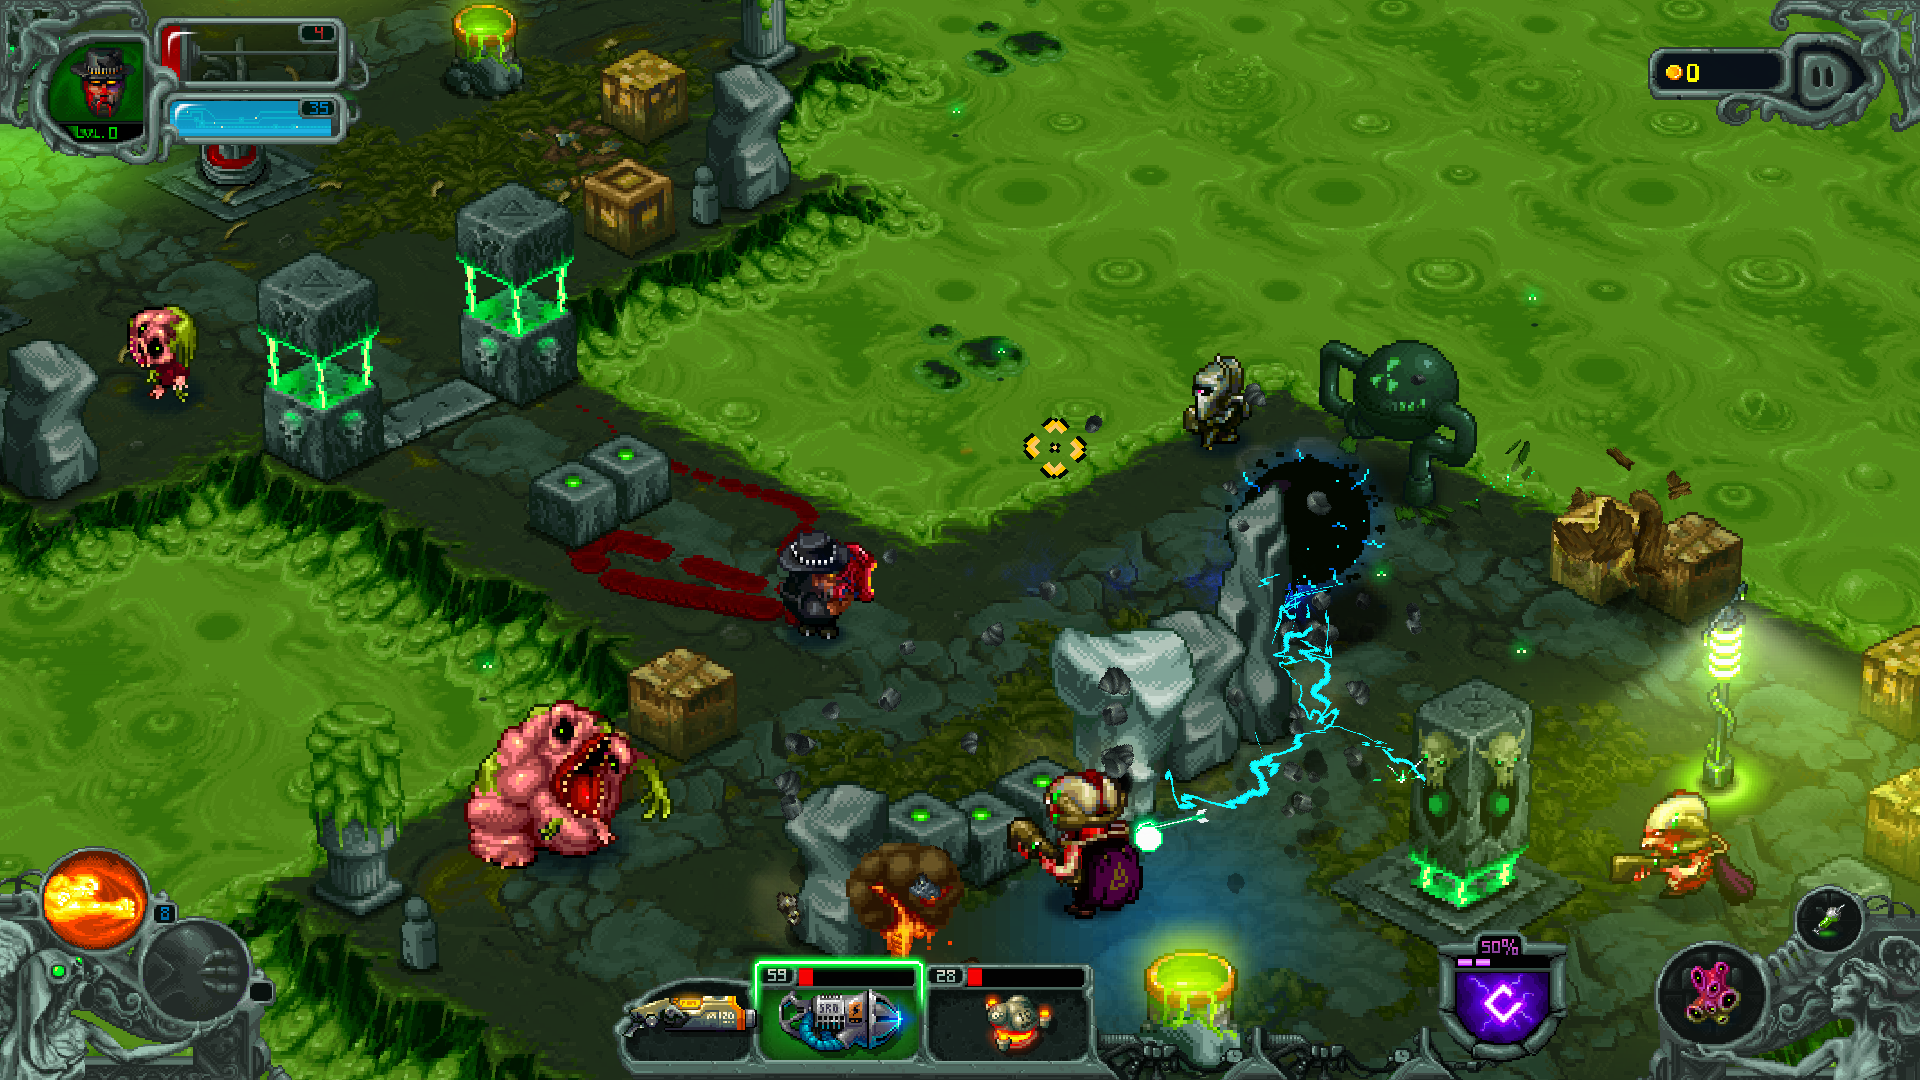 idracula_greenlight_screenshot_01